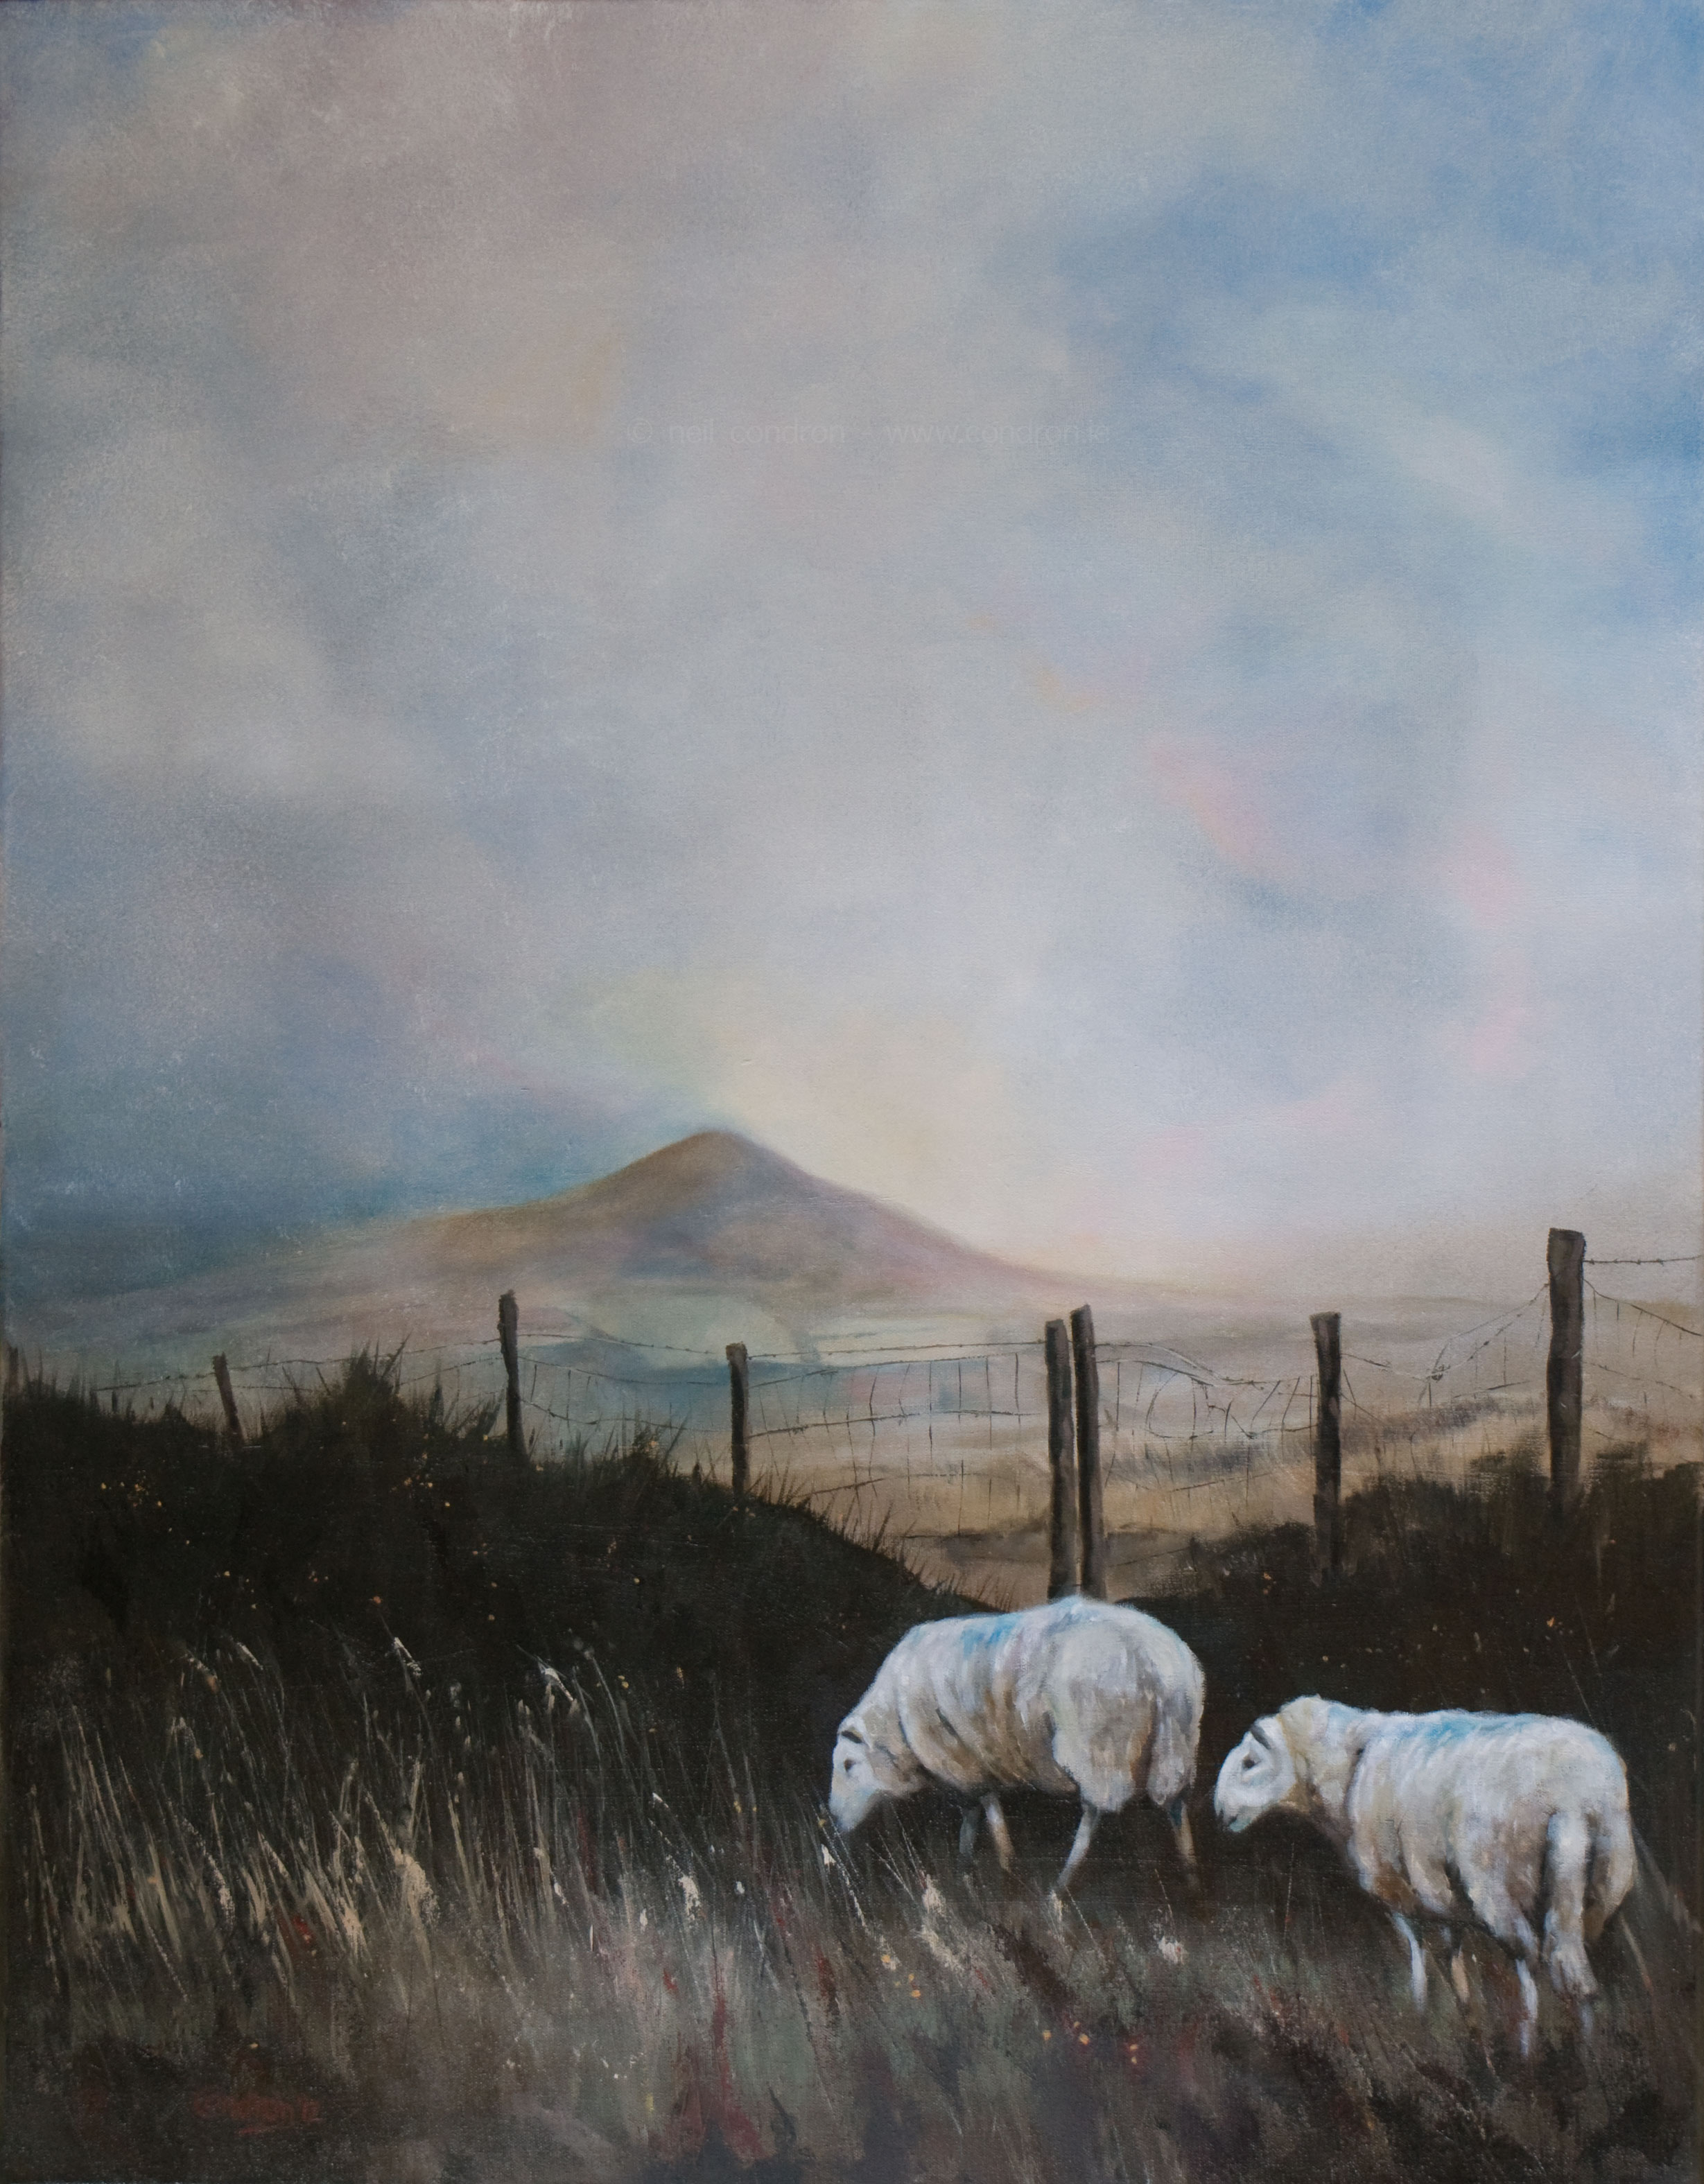 Two sheep and the Sugarloaf